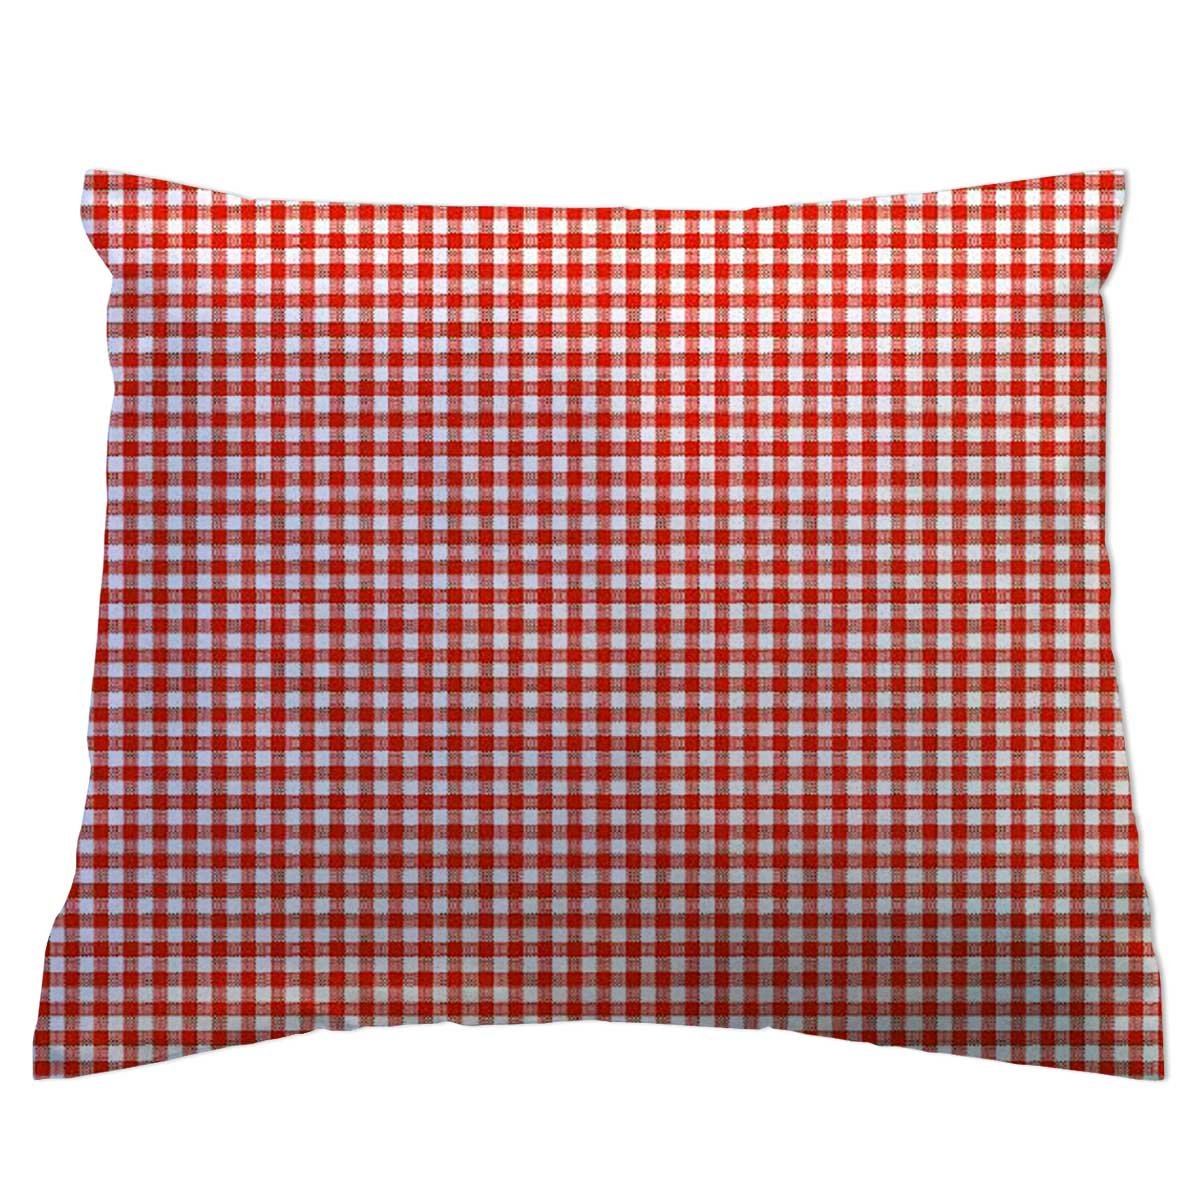 SheetWorld - Toddler Pillowcase Hypoallergenic Made in USA - Primary Gingham Collection - Red 13 x 17